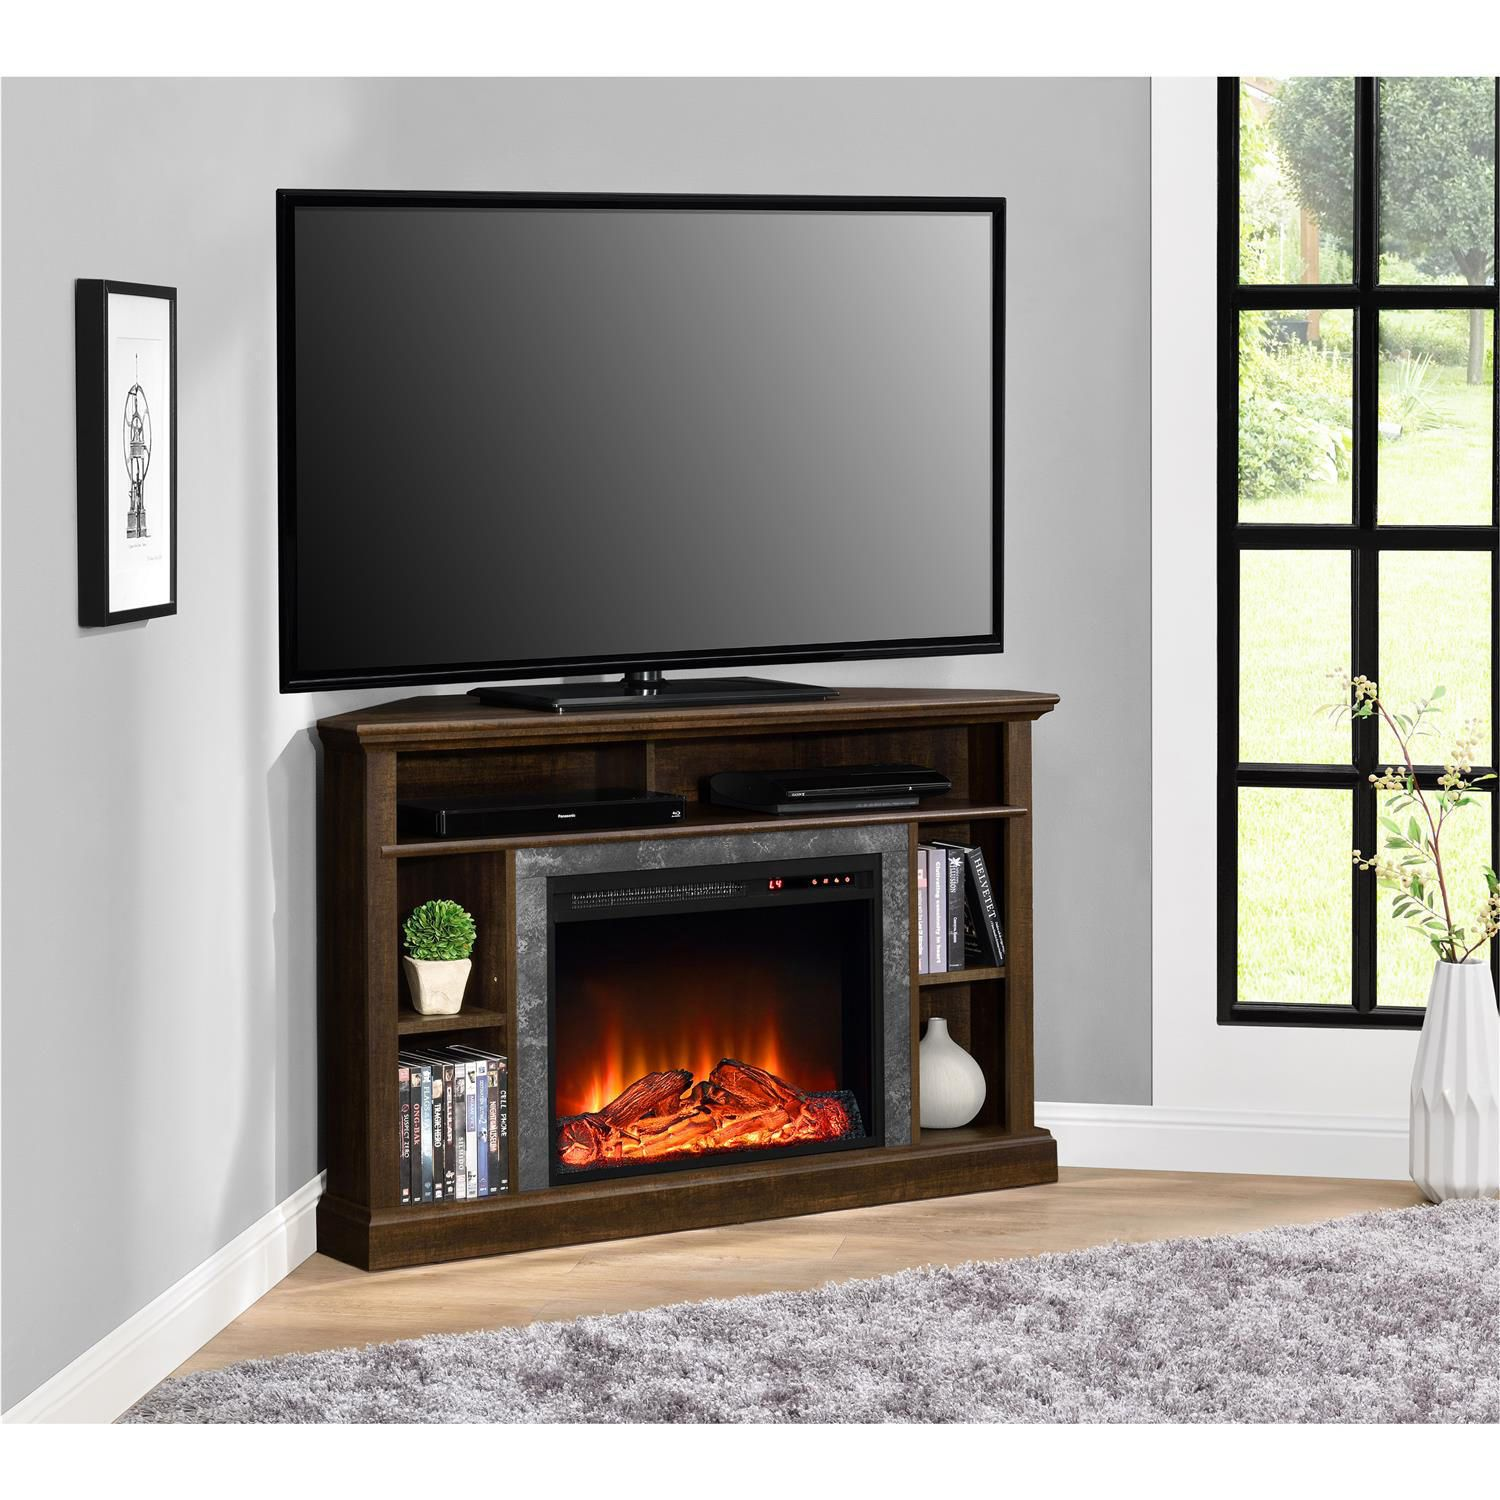 prp napoleon kit mirro panels gas products media porcelain reflective reflector radiant sb black surround sided heat fireplace driftwood deluxe gloss painted product flame linear vector gallery